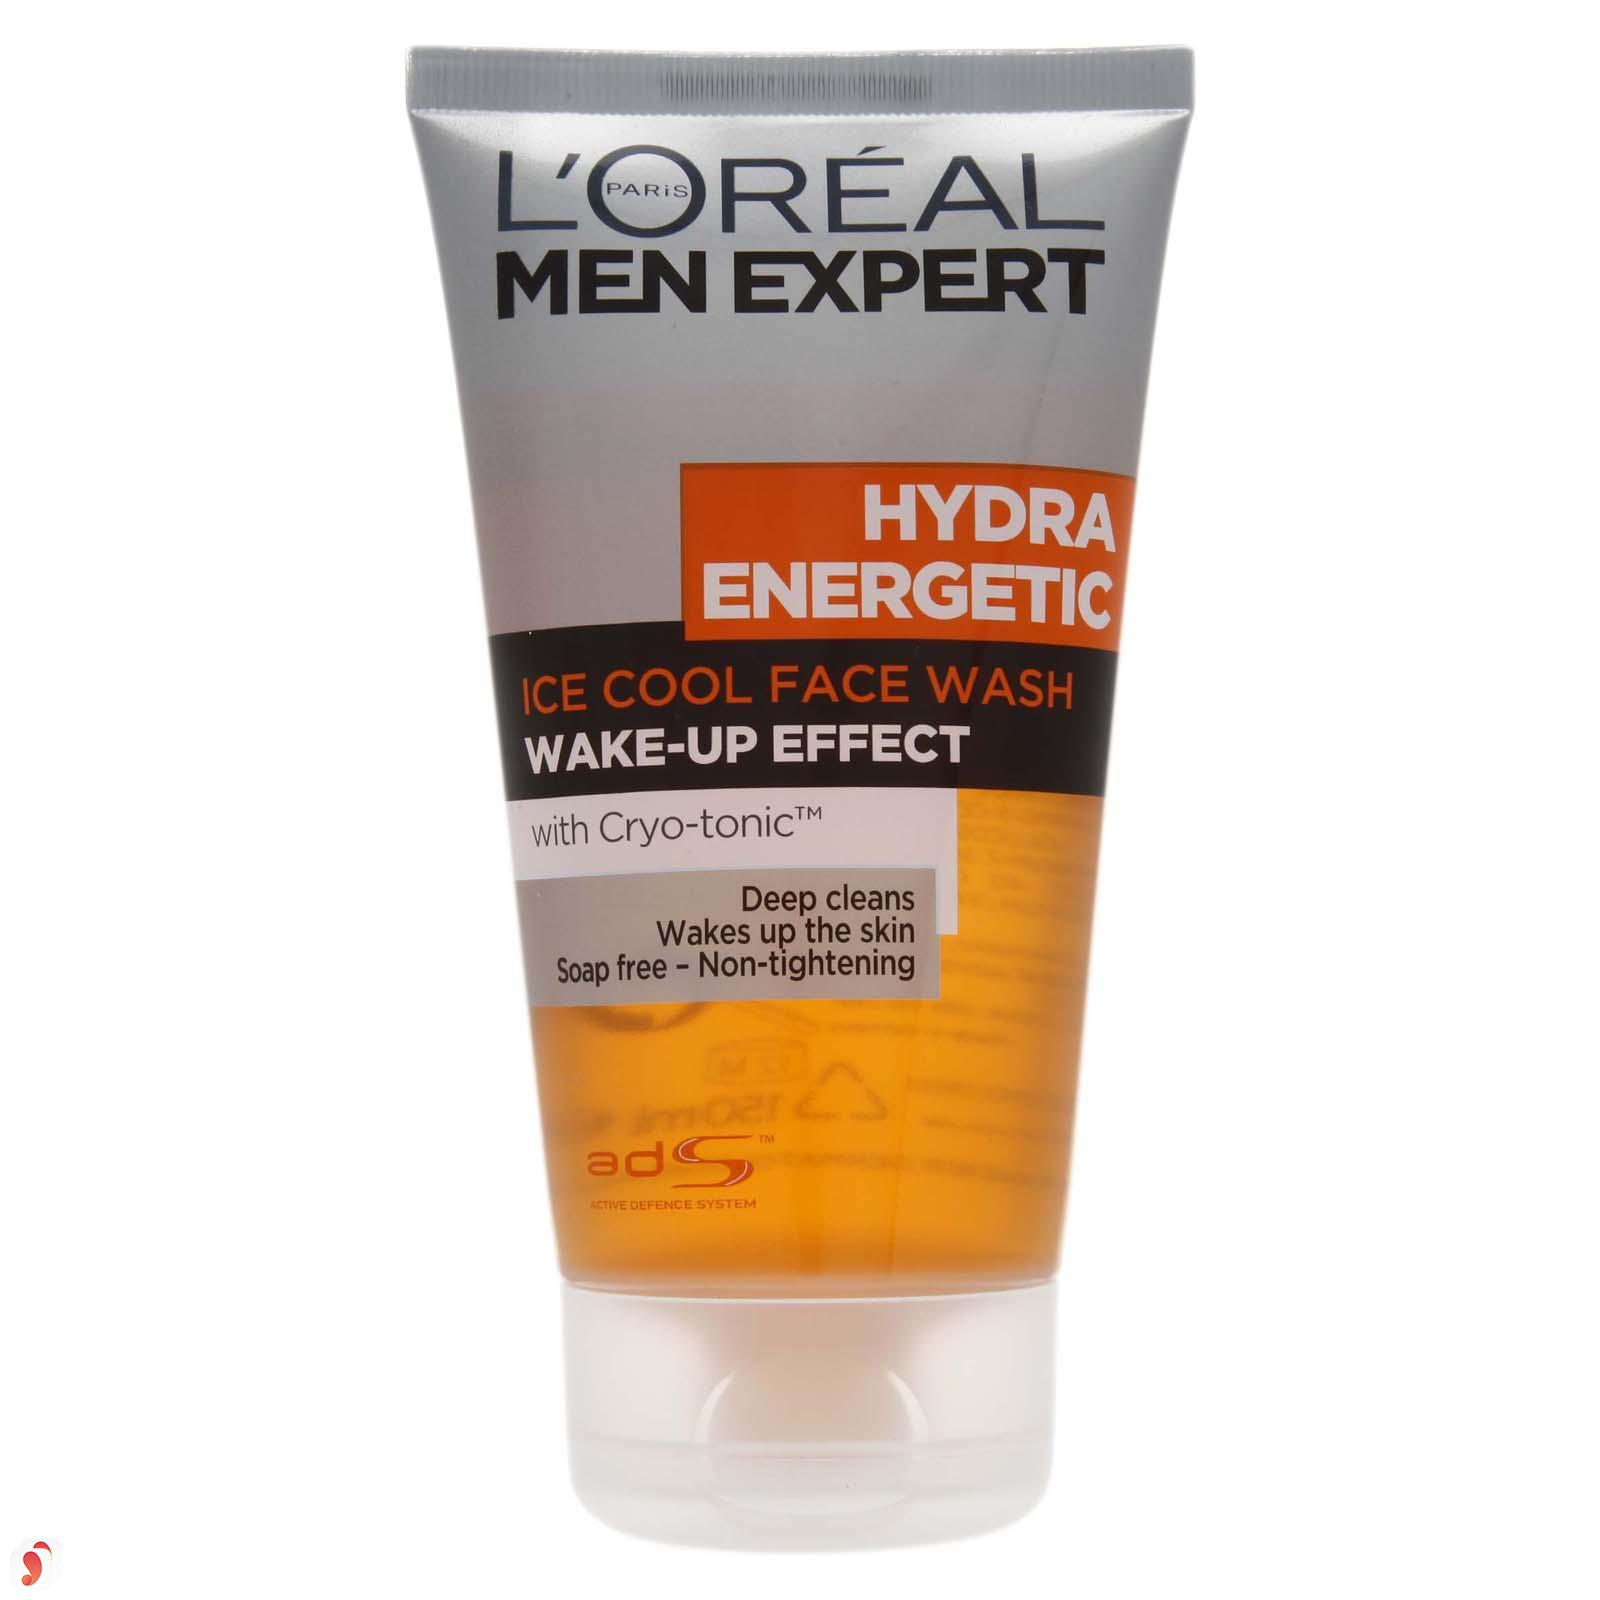 Loreal Men Expert Hydra Energetic 1